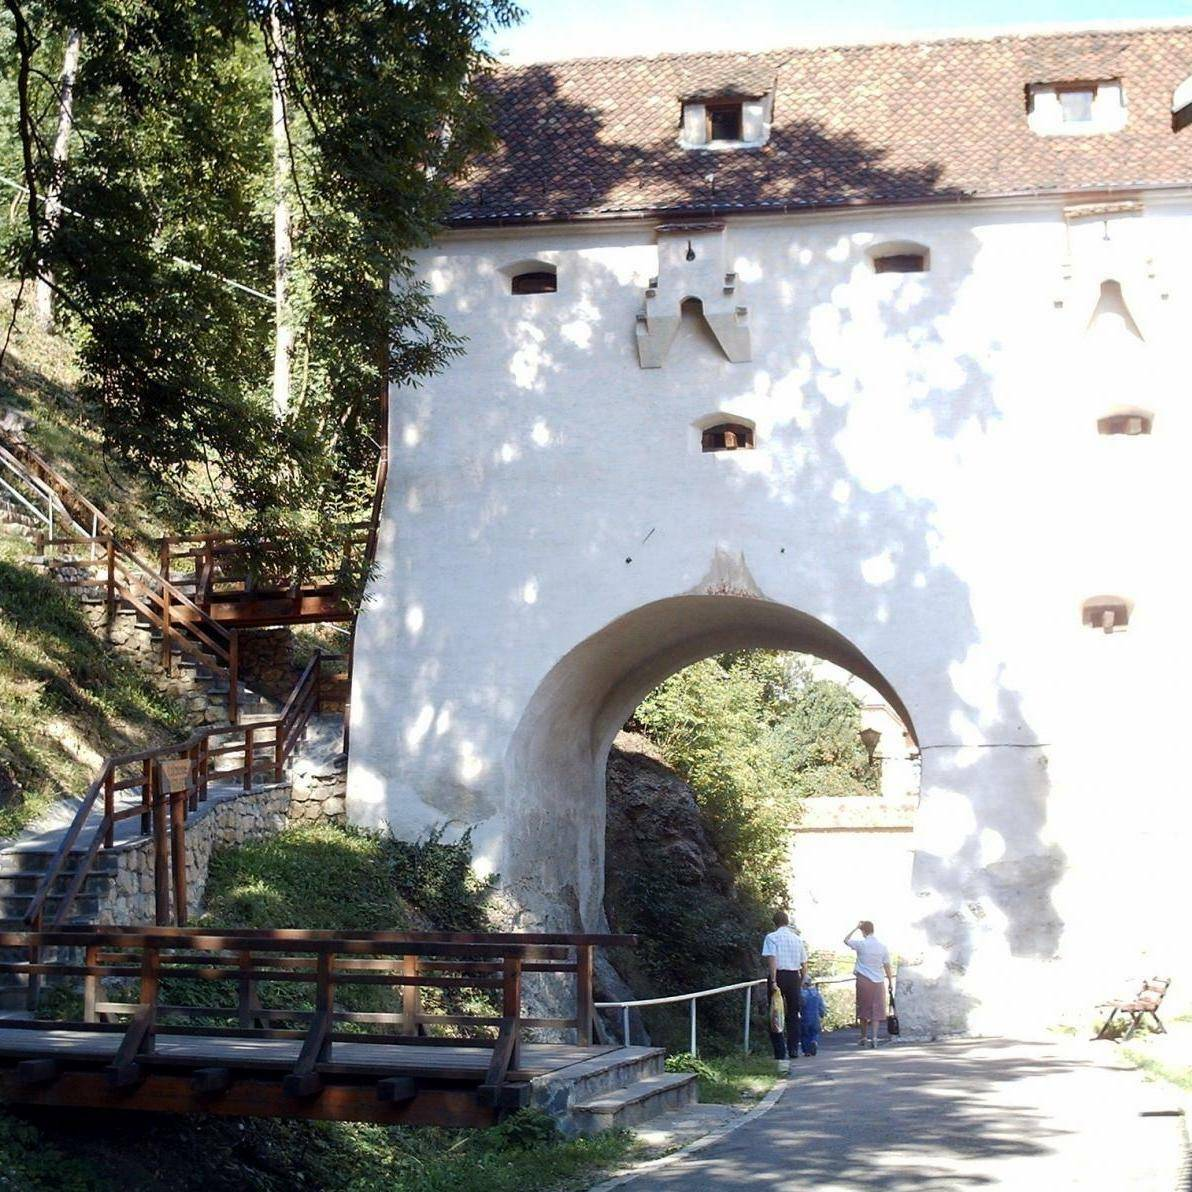 Graft Bastion Brasov